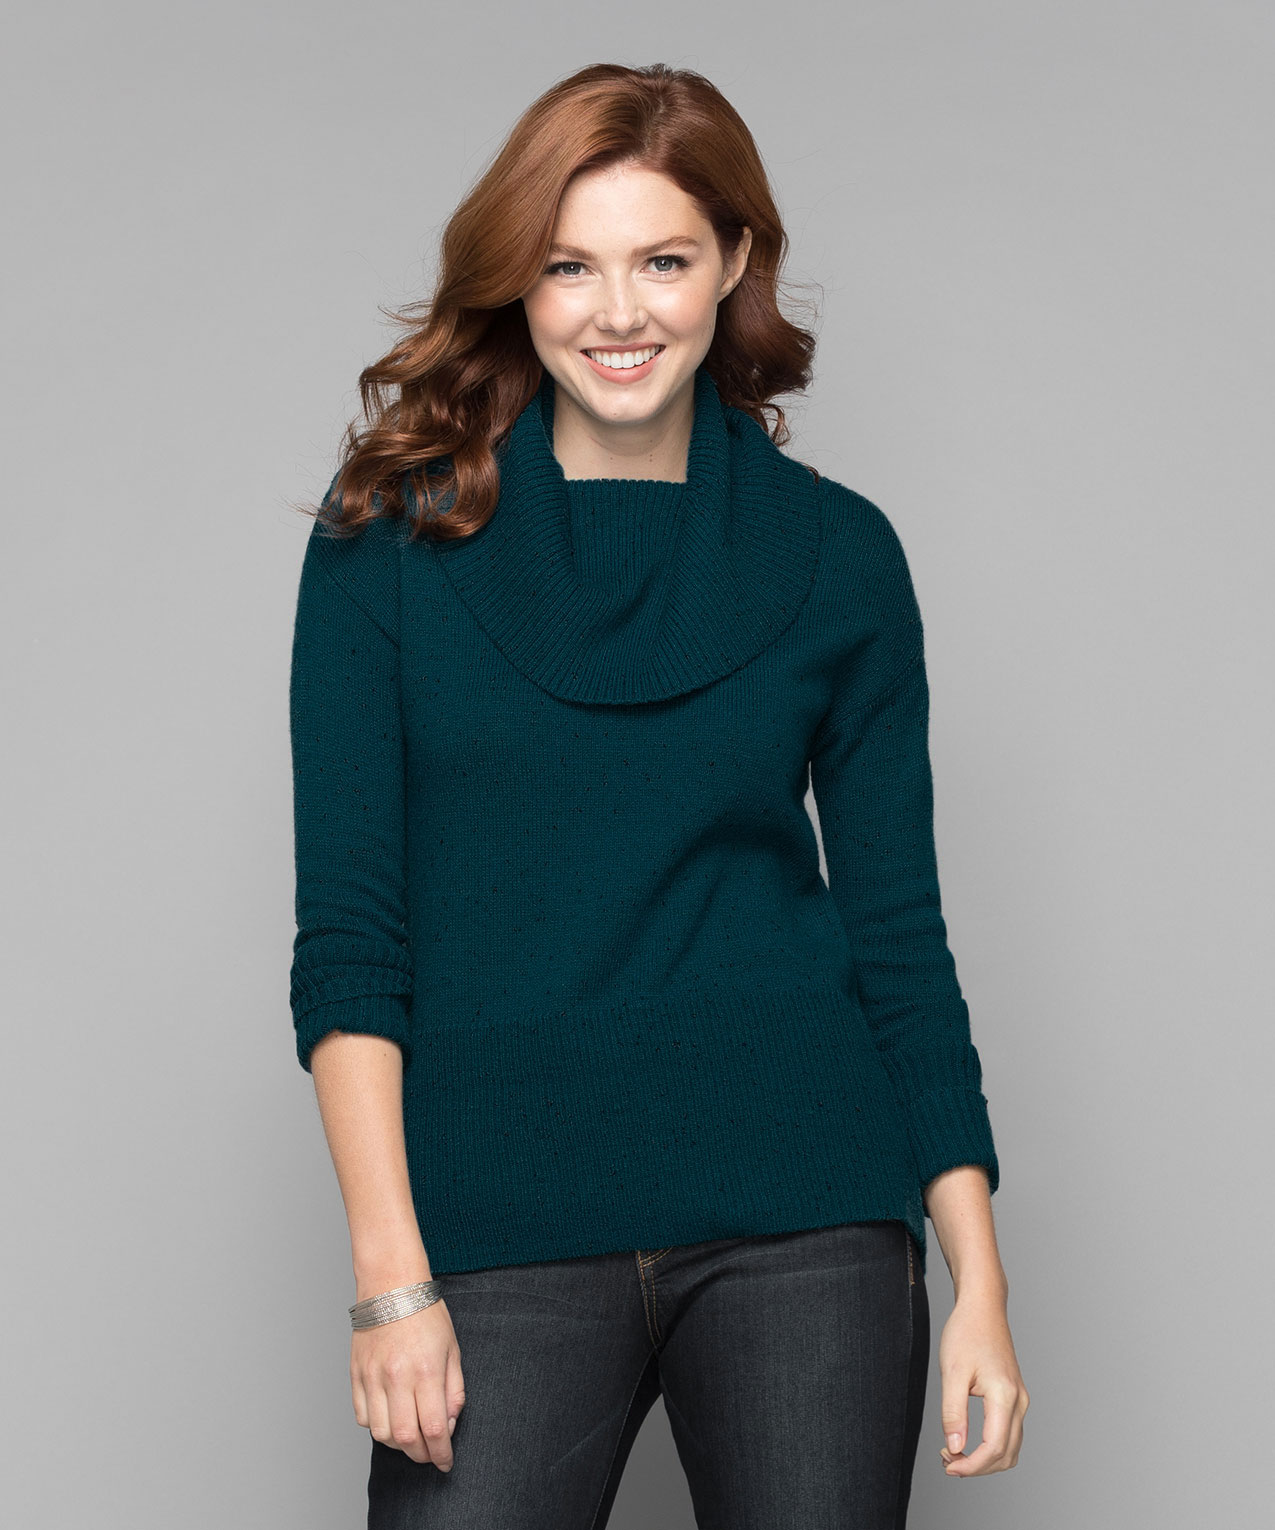 476276919d1 ... Ribbed Cowl Neck Pullover Sweater